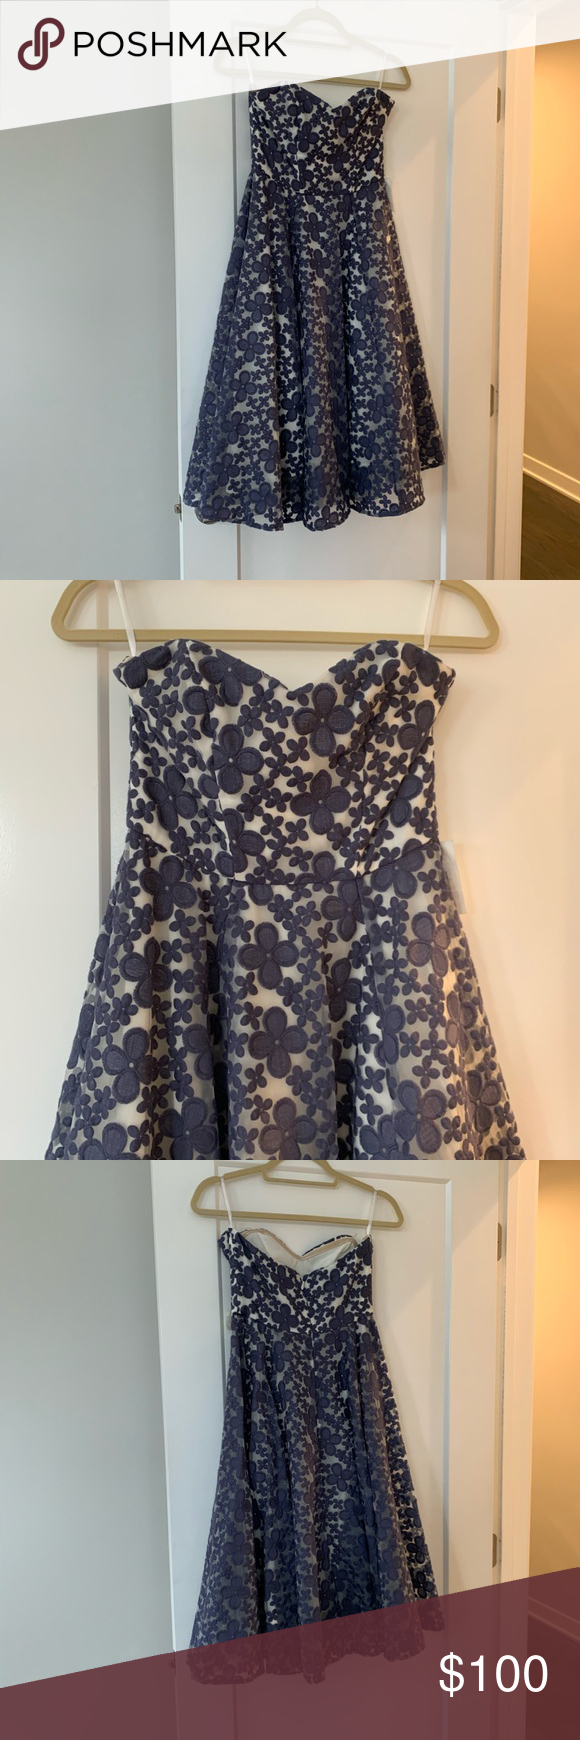 Paper Crown Floral Dress Never worn Paper Crown Dresses Midi #fashiondresses